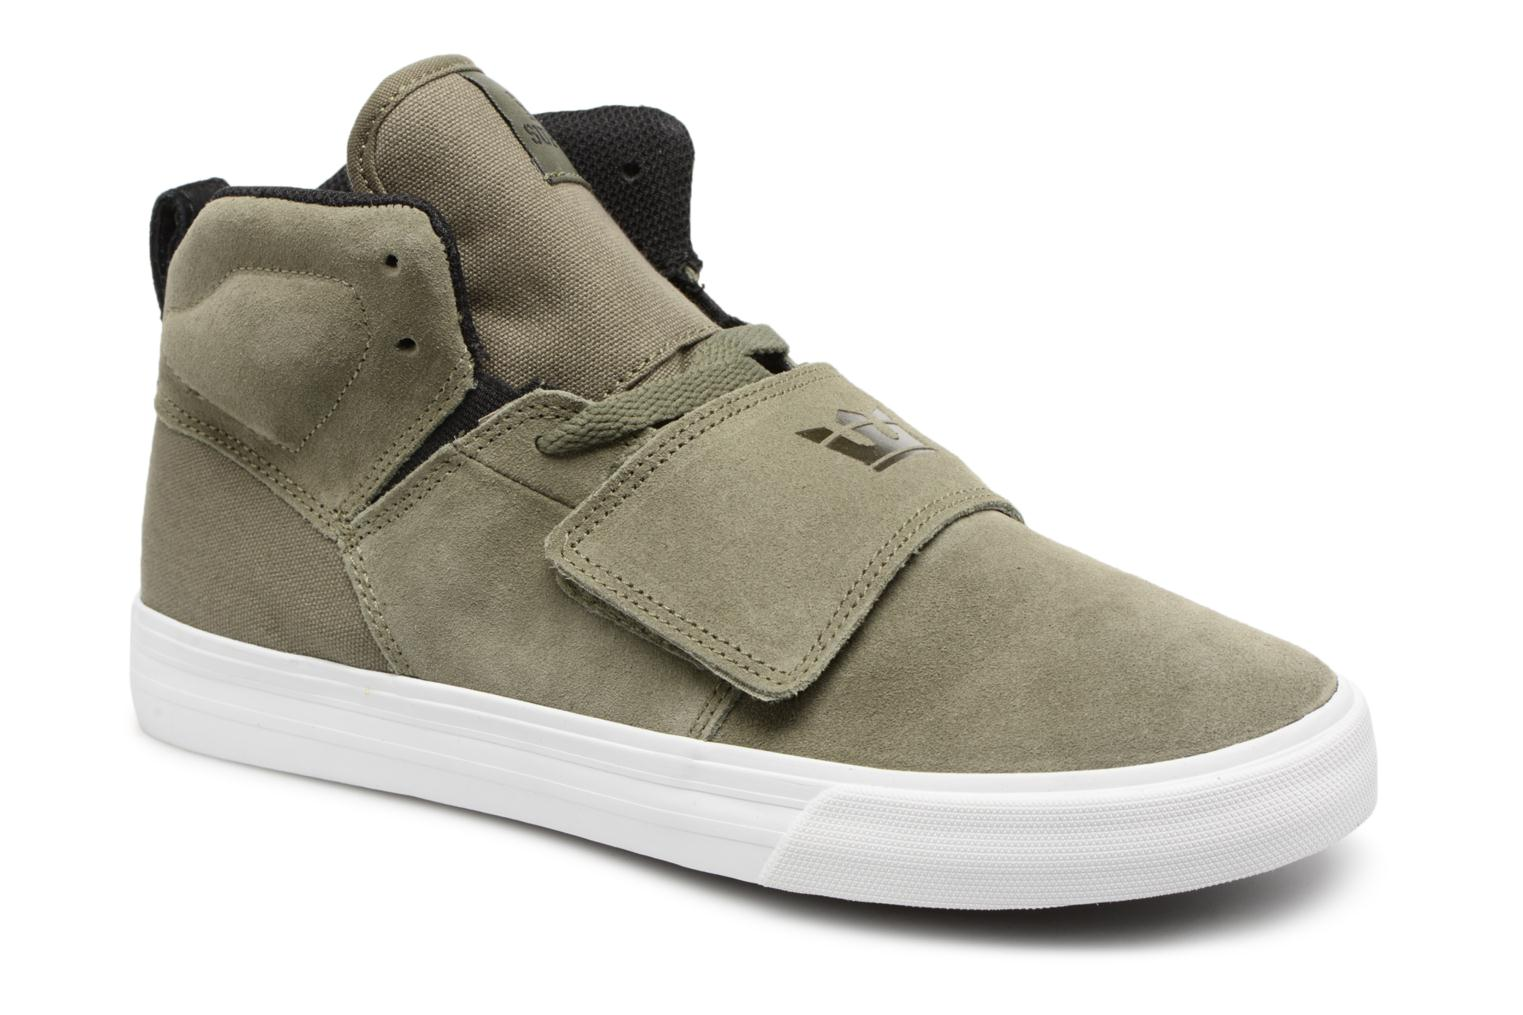 Marques Chaussure homme Supra homme ROCK LIGHT GREY - OFF WHITE-M